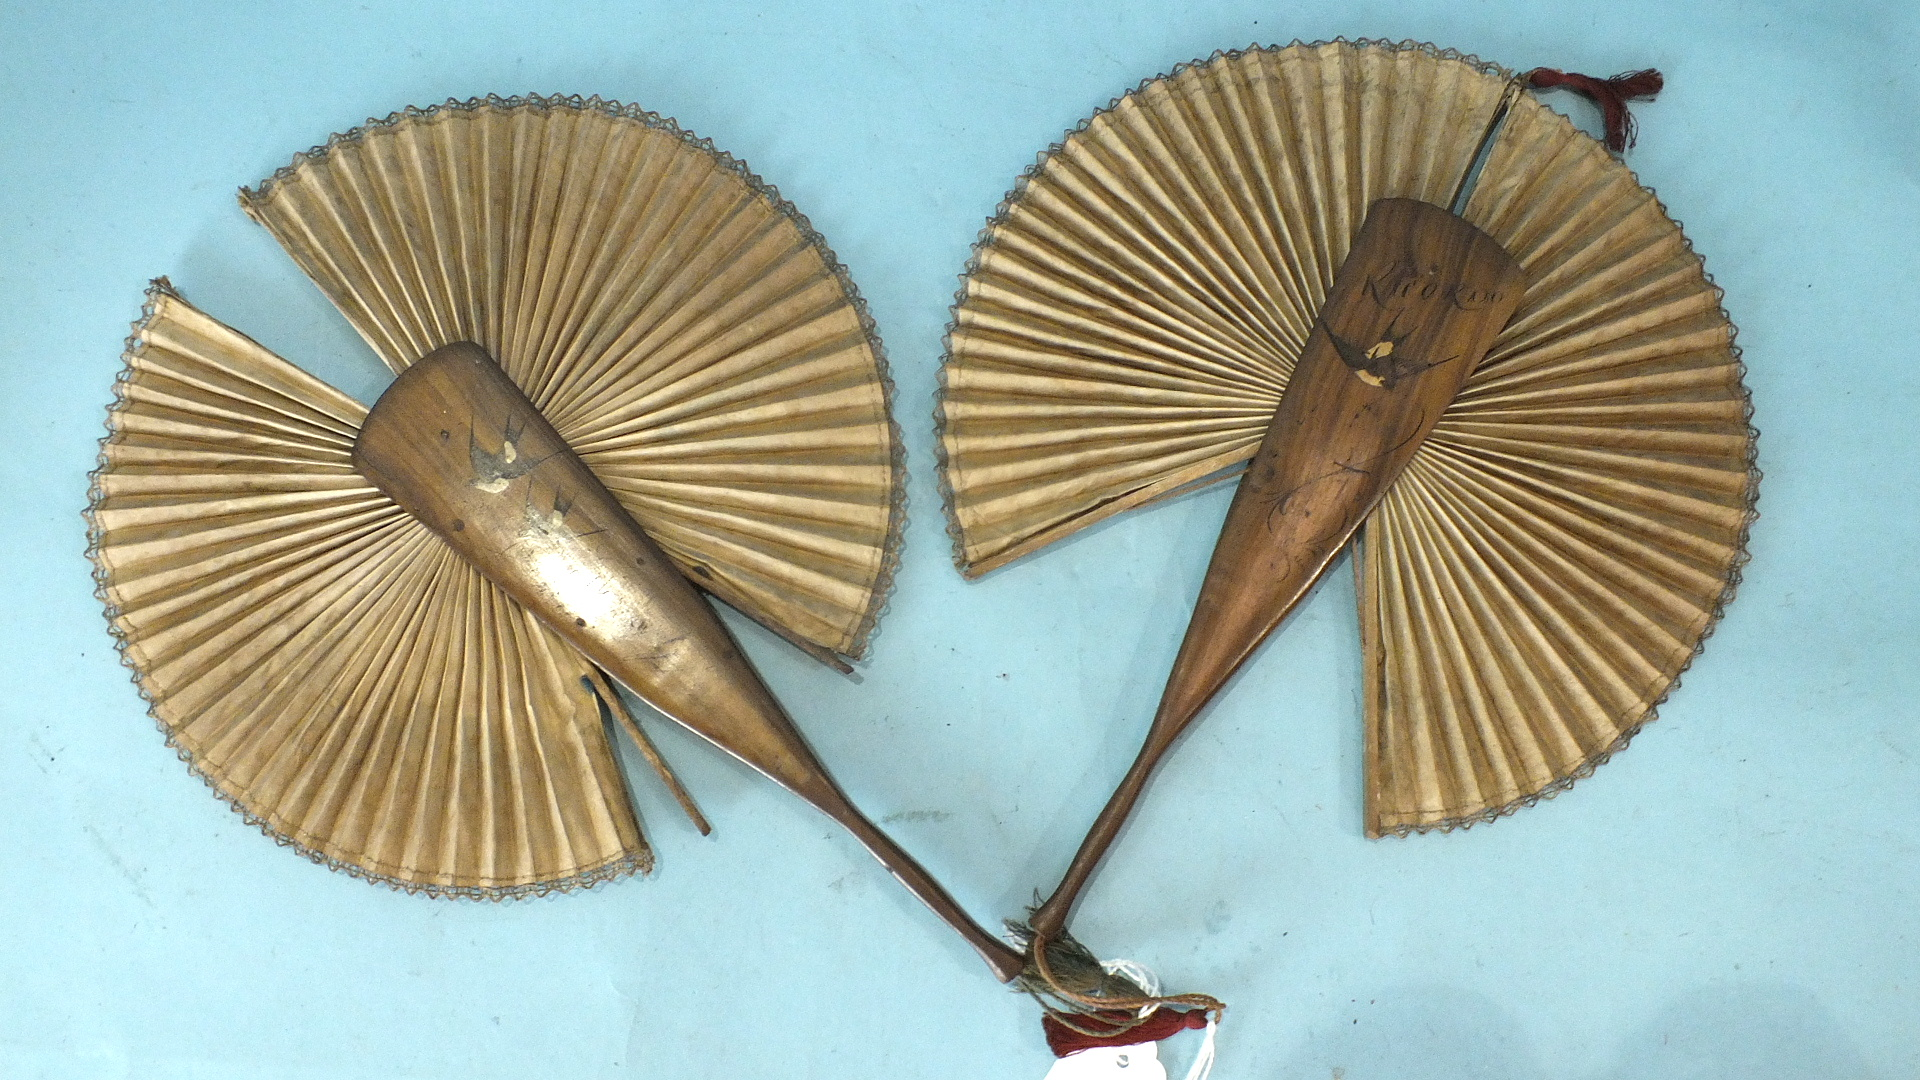 Lot 490 - An early-20th century olive-wood-handle cockade fan, inscribed 'Ricordo', above an inlaid swallow on